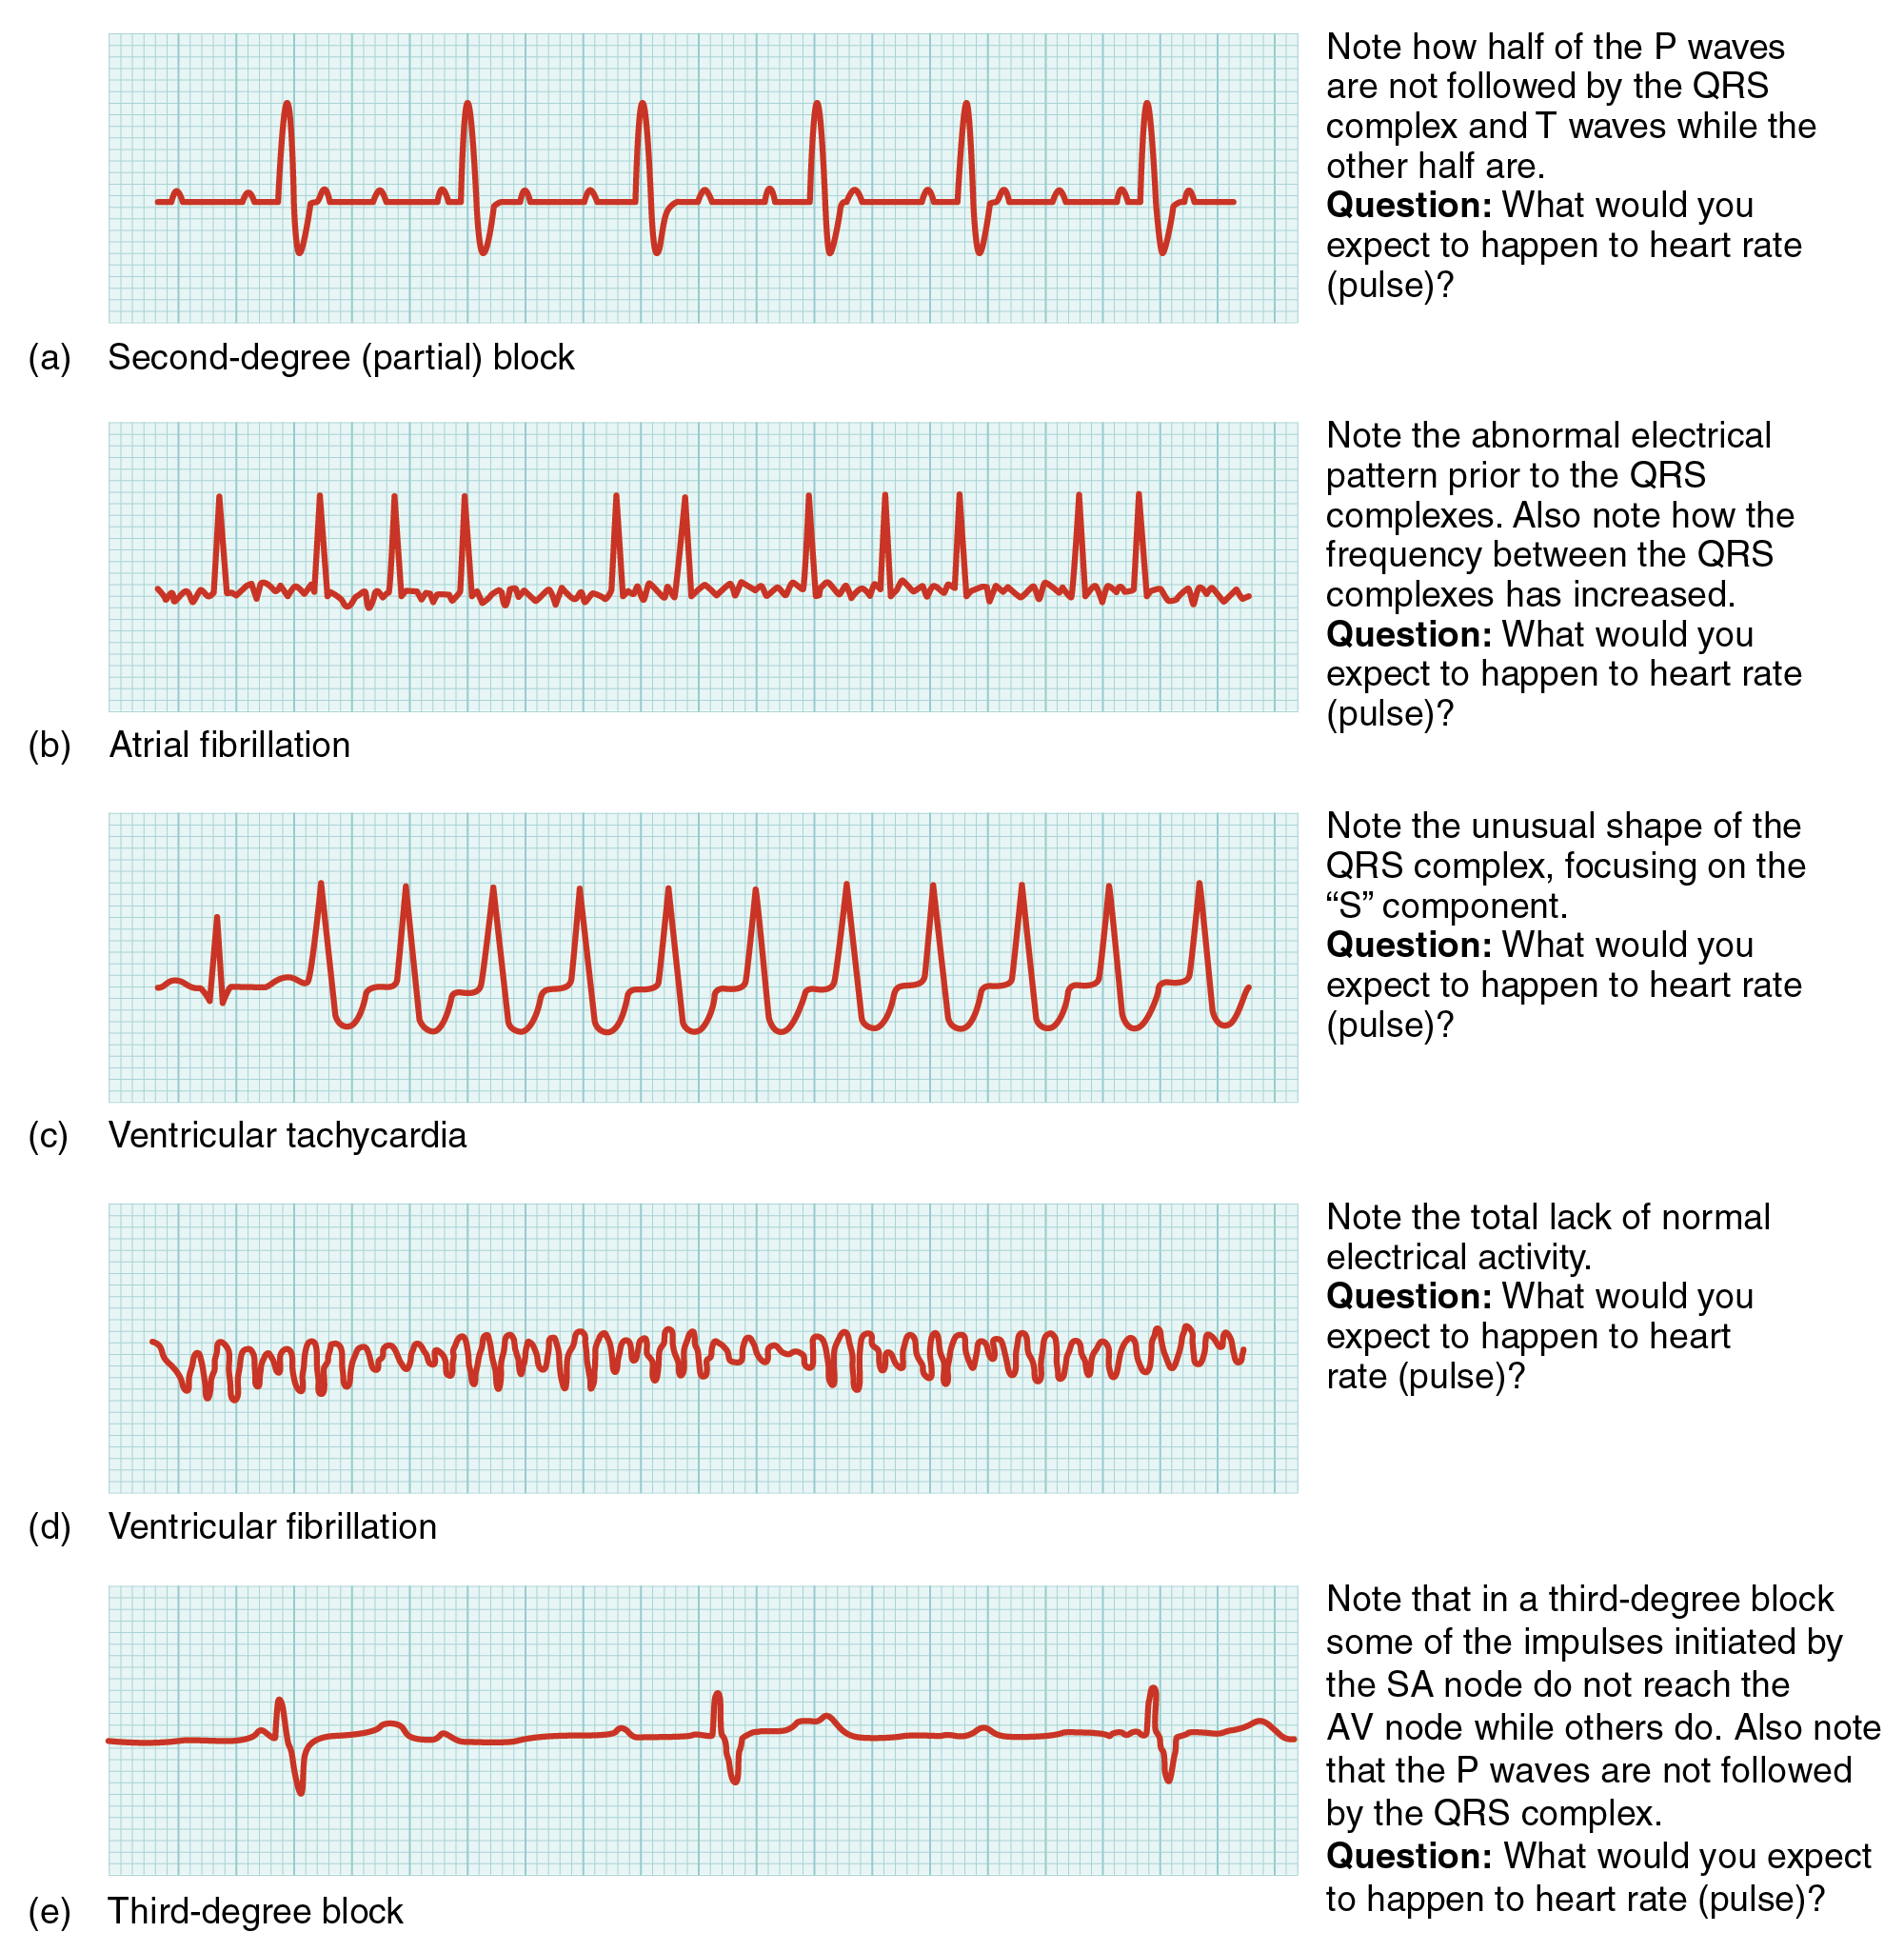 Illustrations showing comparisons of common ECG abnormalities